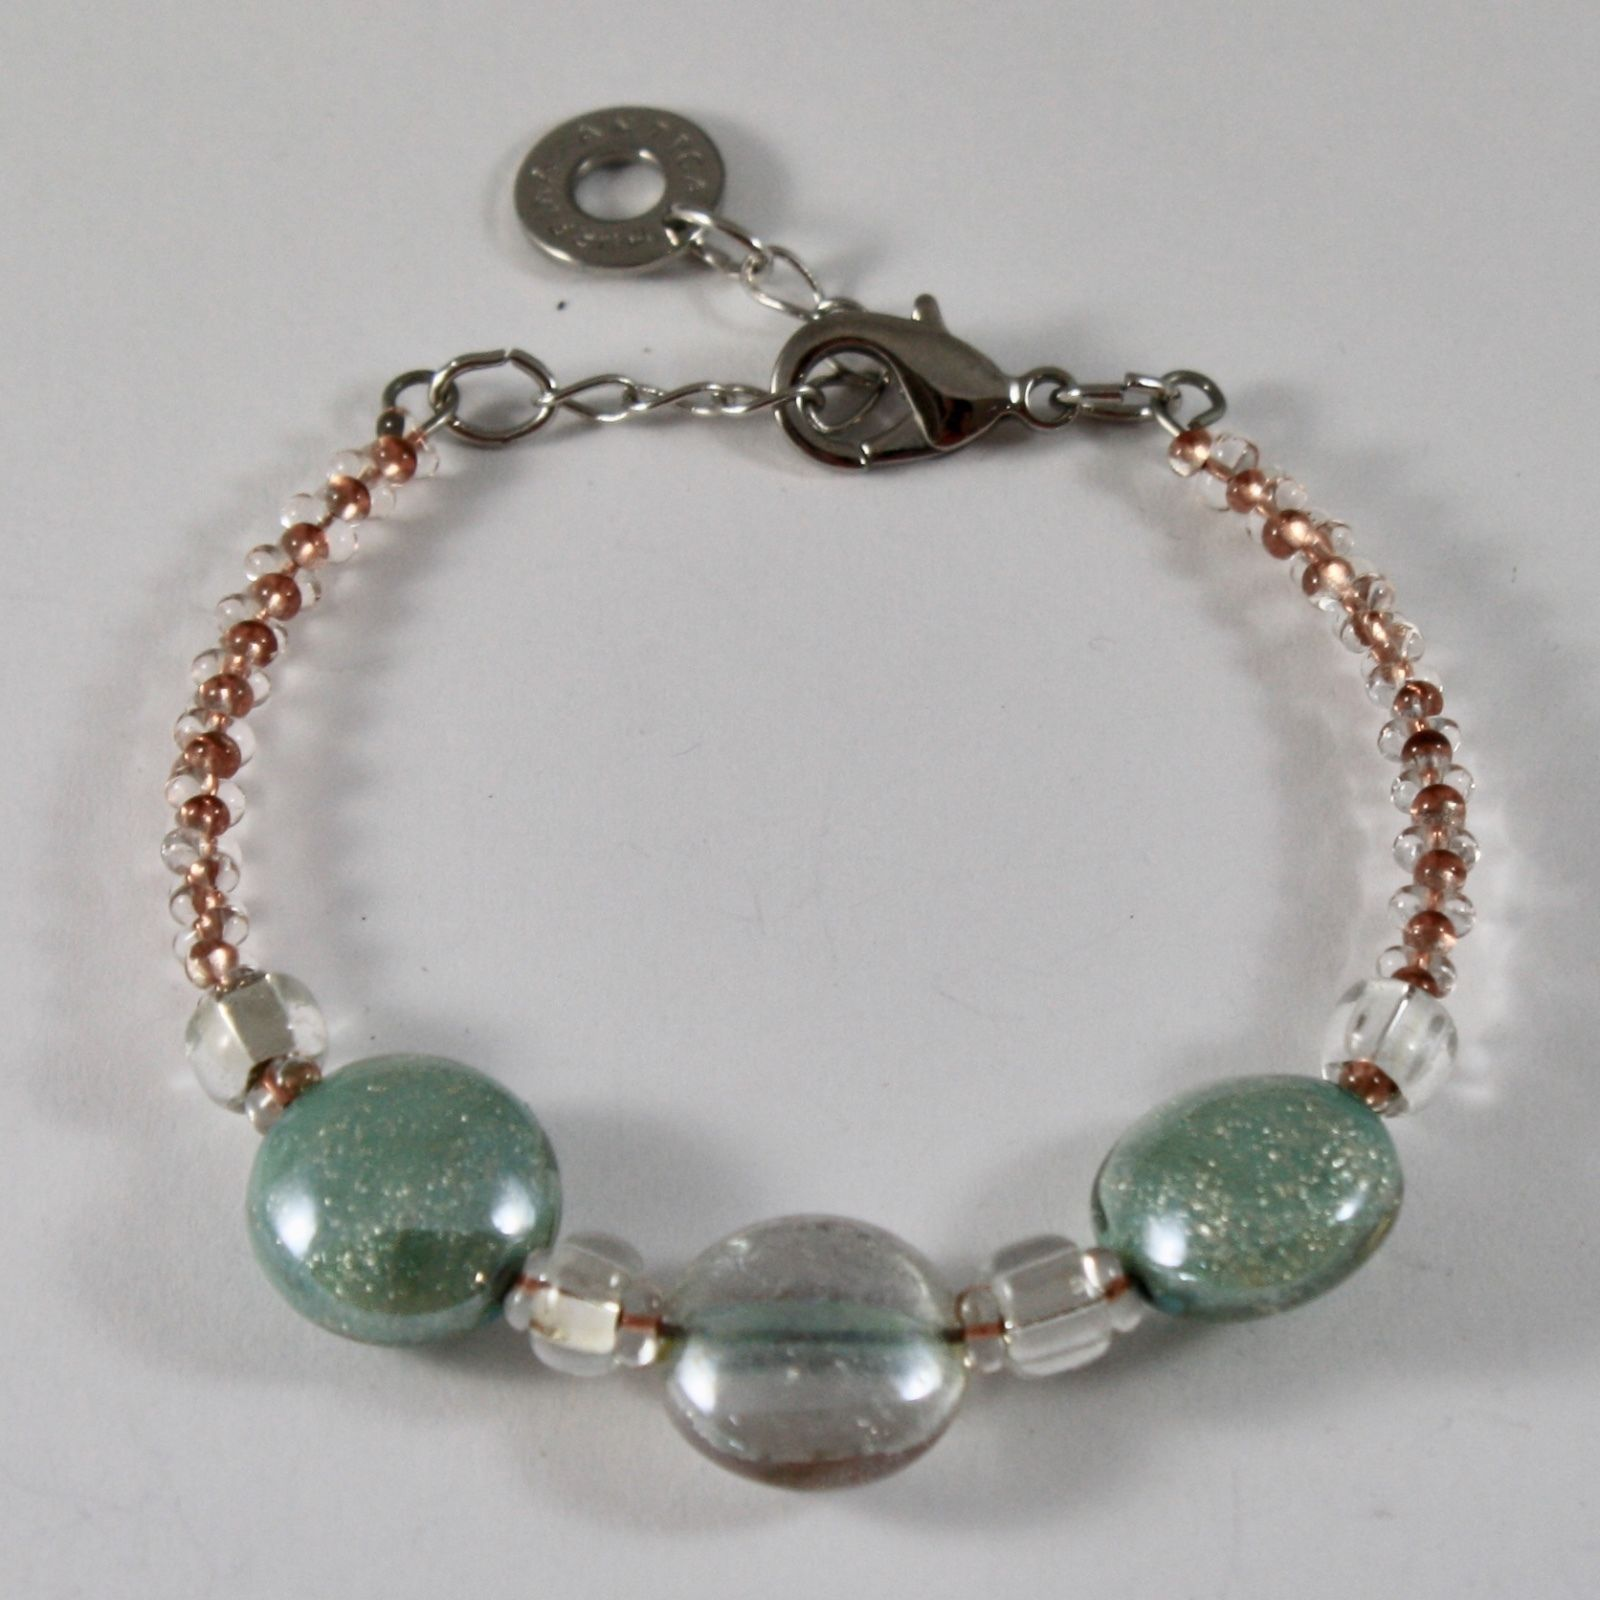 BRACELET ANTICA MURRINA VENEZIA WITH MURANO GLASS, DISCS ROSE AND GREEN